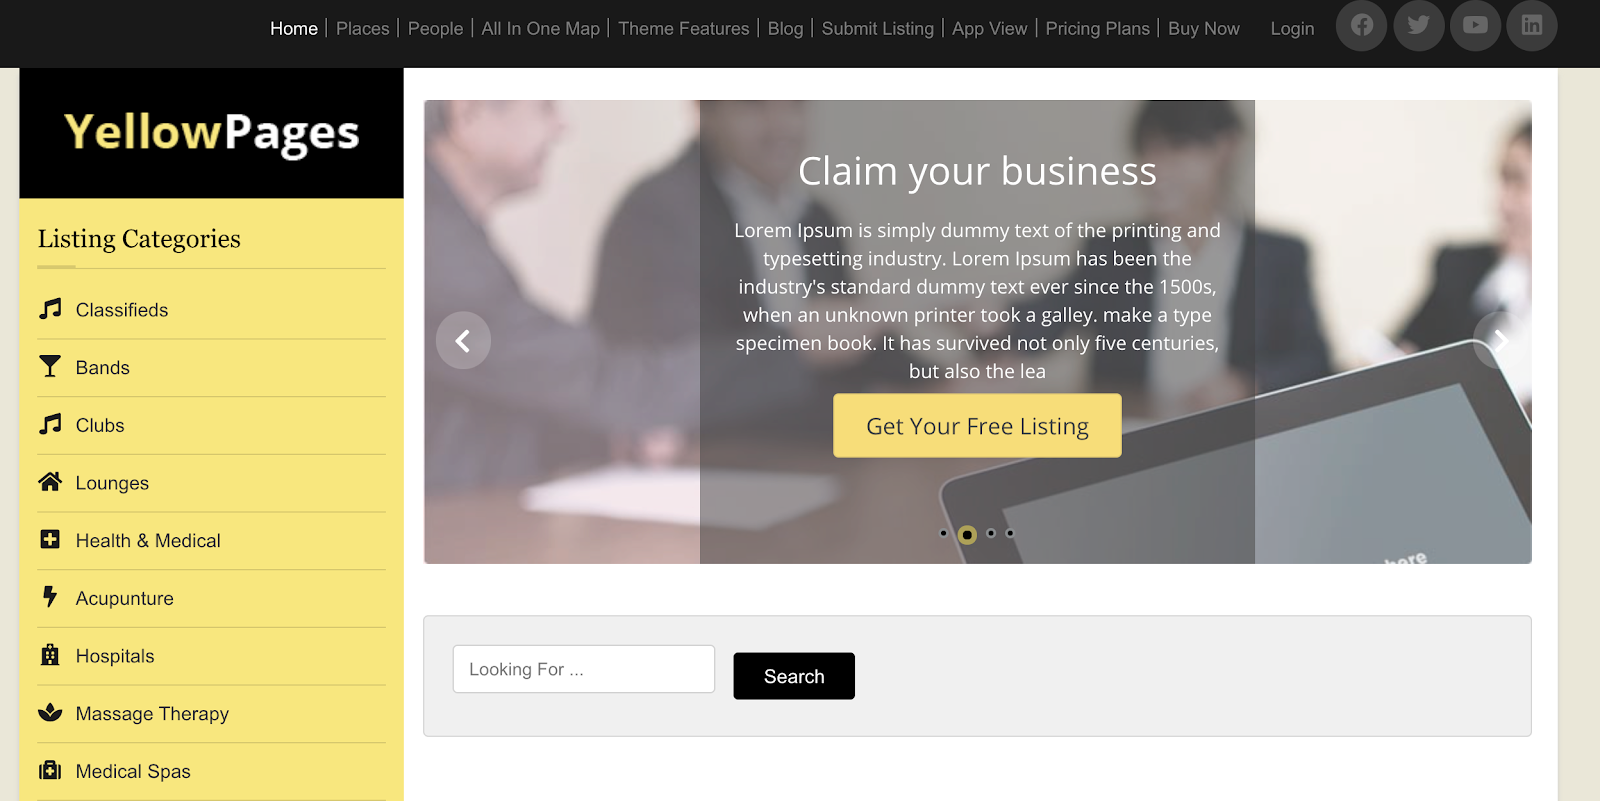 yellowpages directory theme search page demo